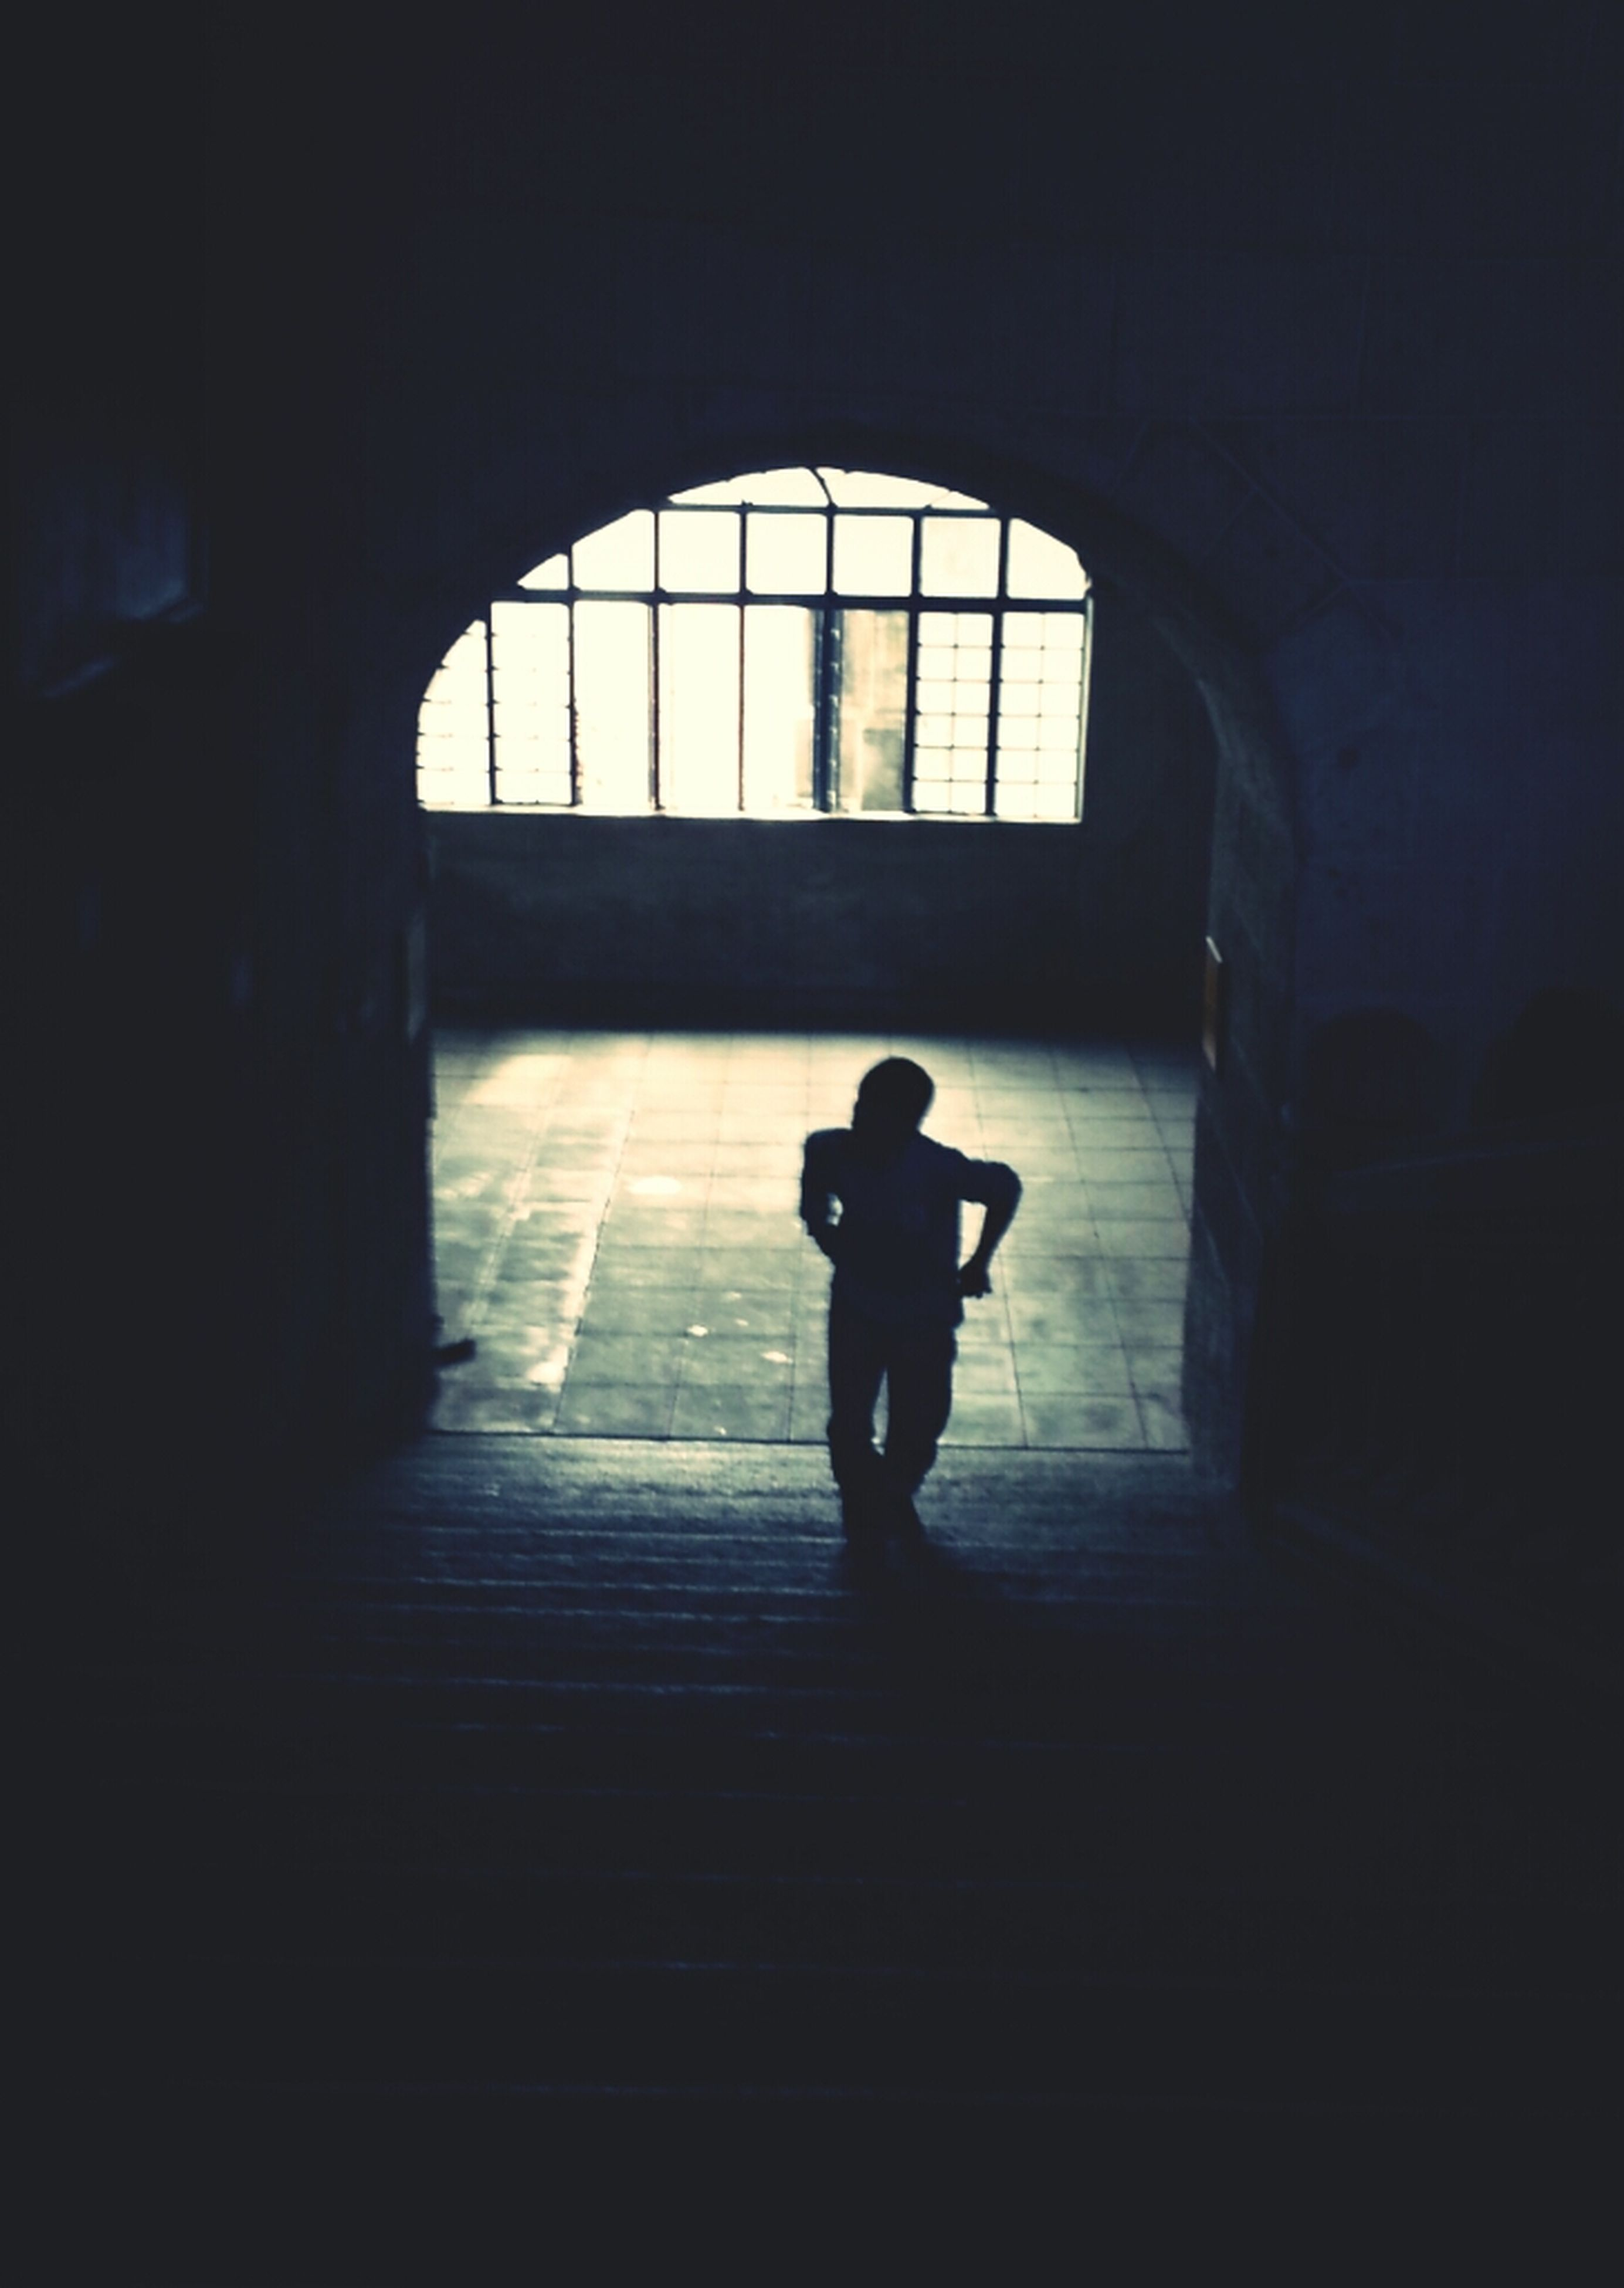 indoors, silhouette, full length, architecture, walking, built structure, lifestyles, men, tunnel, window, rear view, arch, standing, sunlight, leisure activity, dark, shadow, wall - building feature